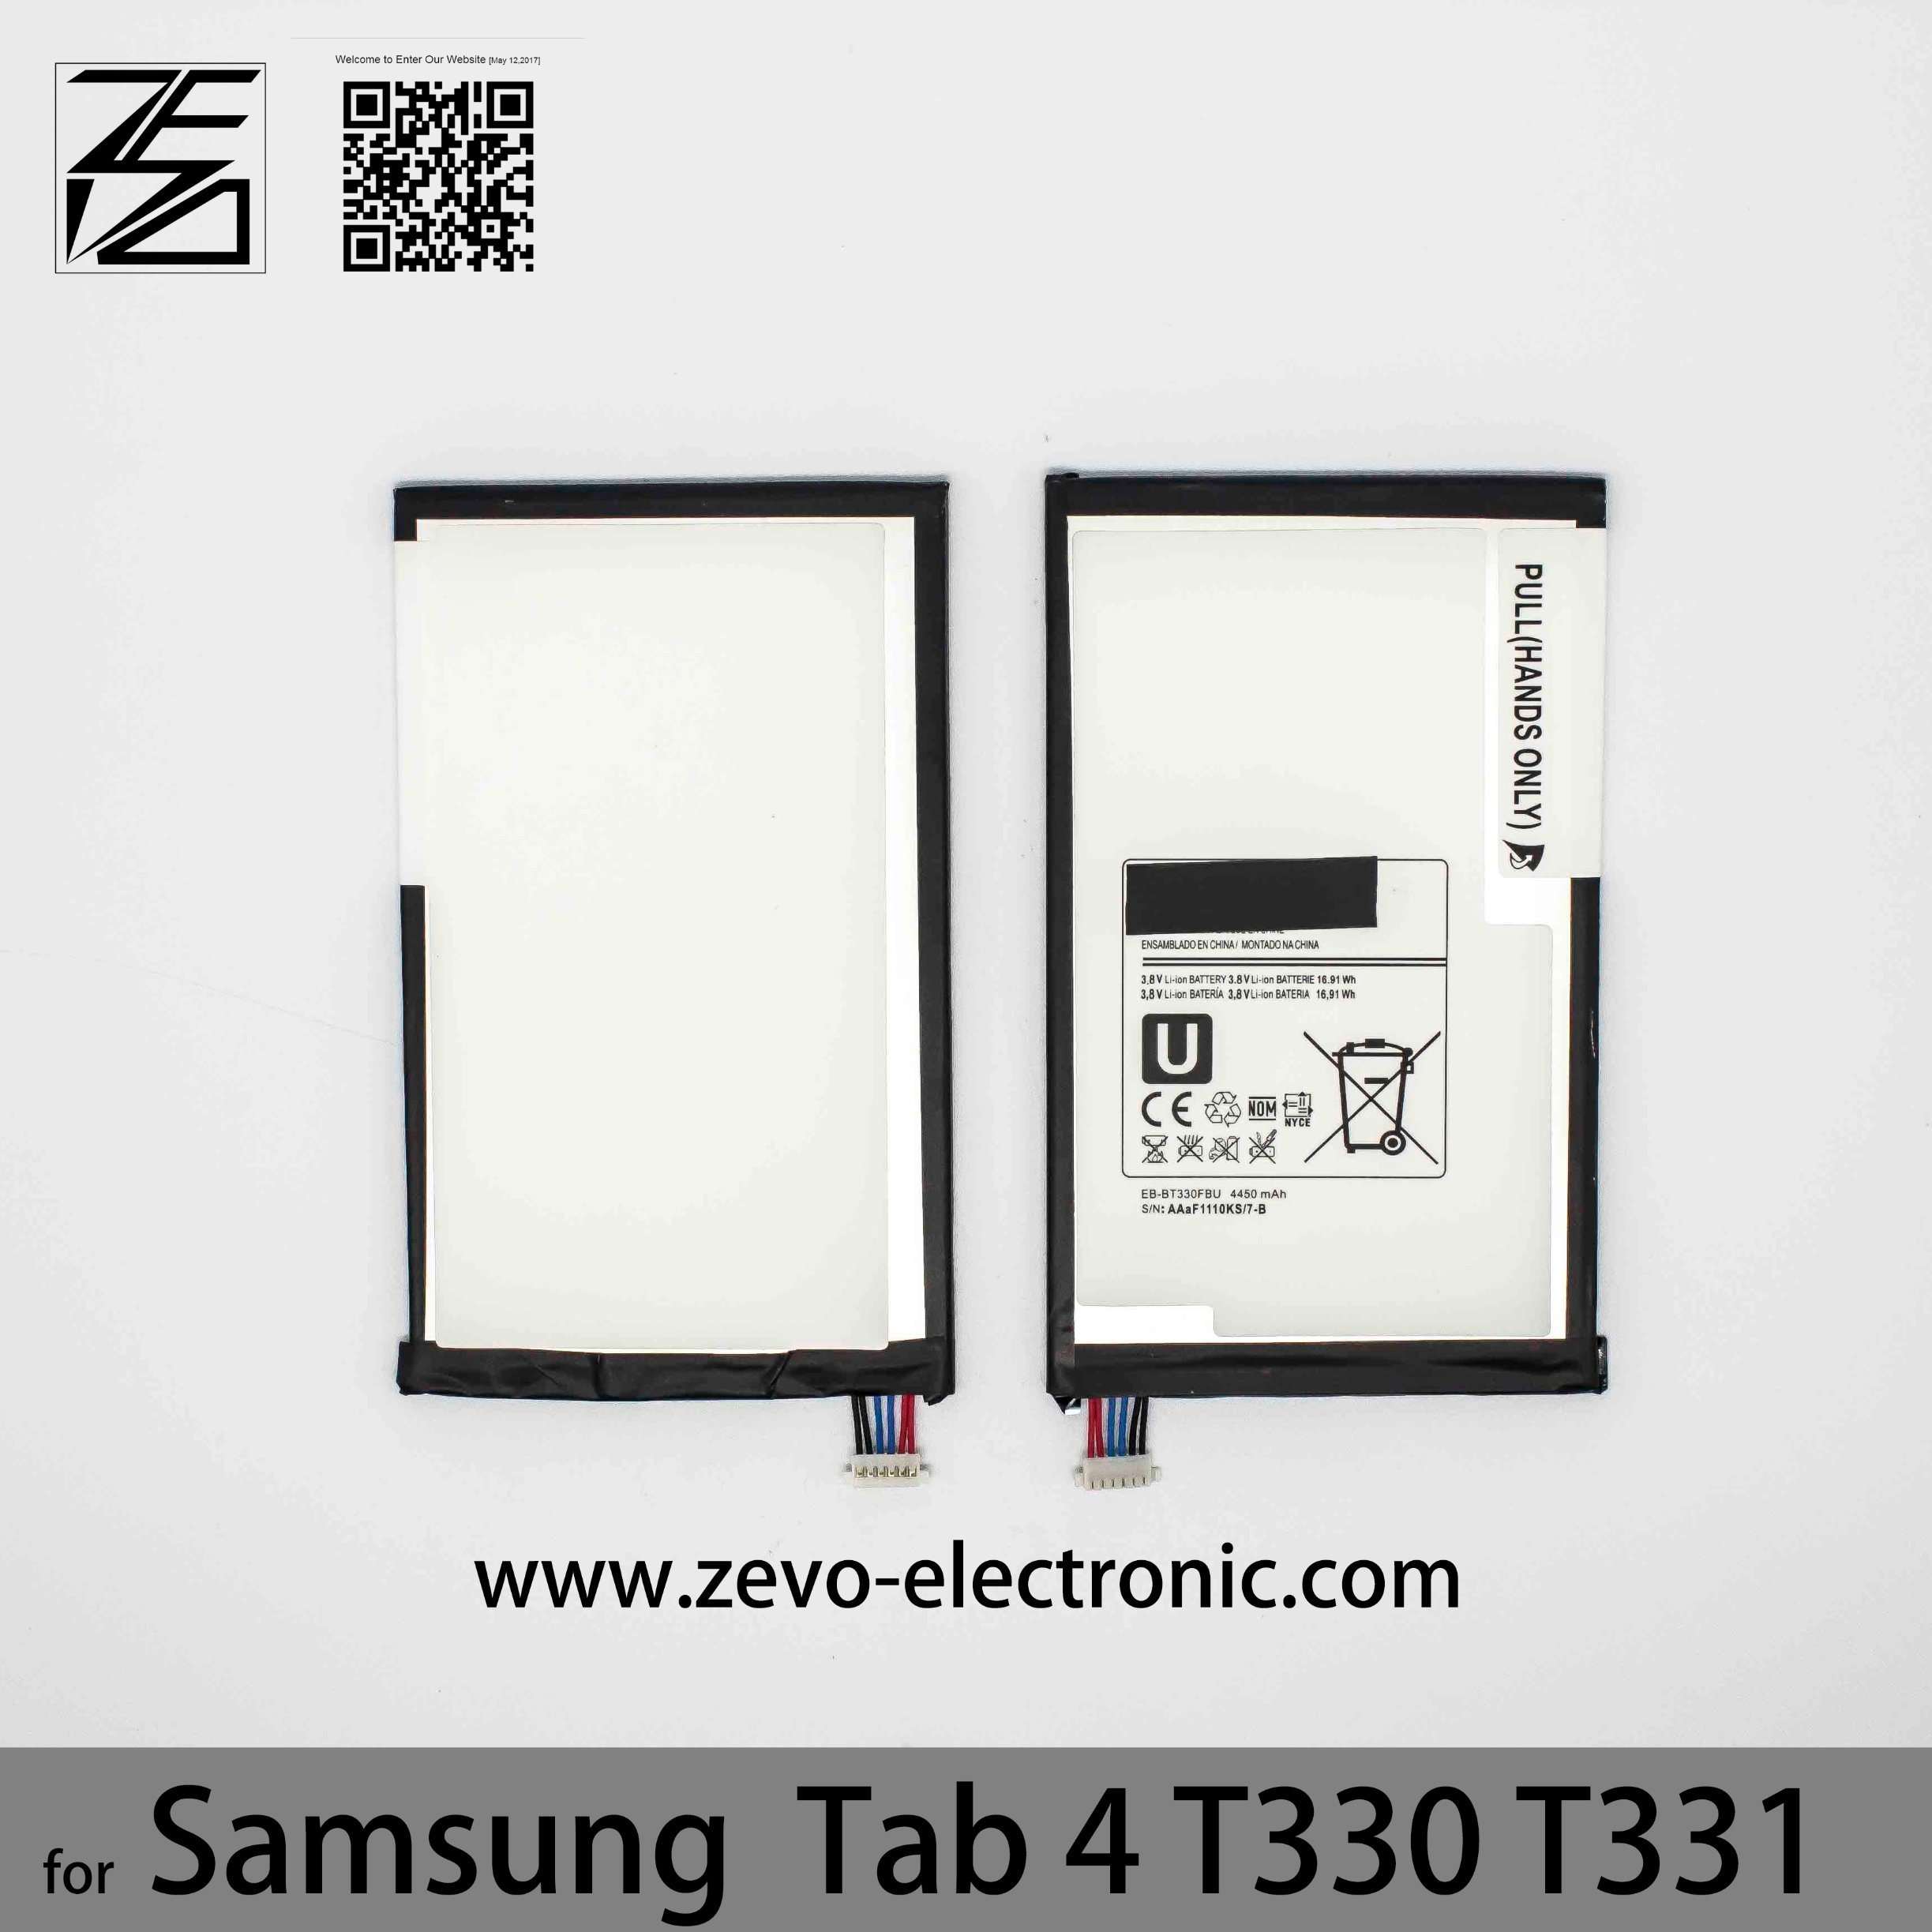 China Original Replacement Battery 4450mah Eb Bt330fbe For Samsung Galaxy Note 2 3600mah Tab 4 T330 T331 Manufacturer